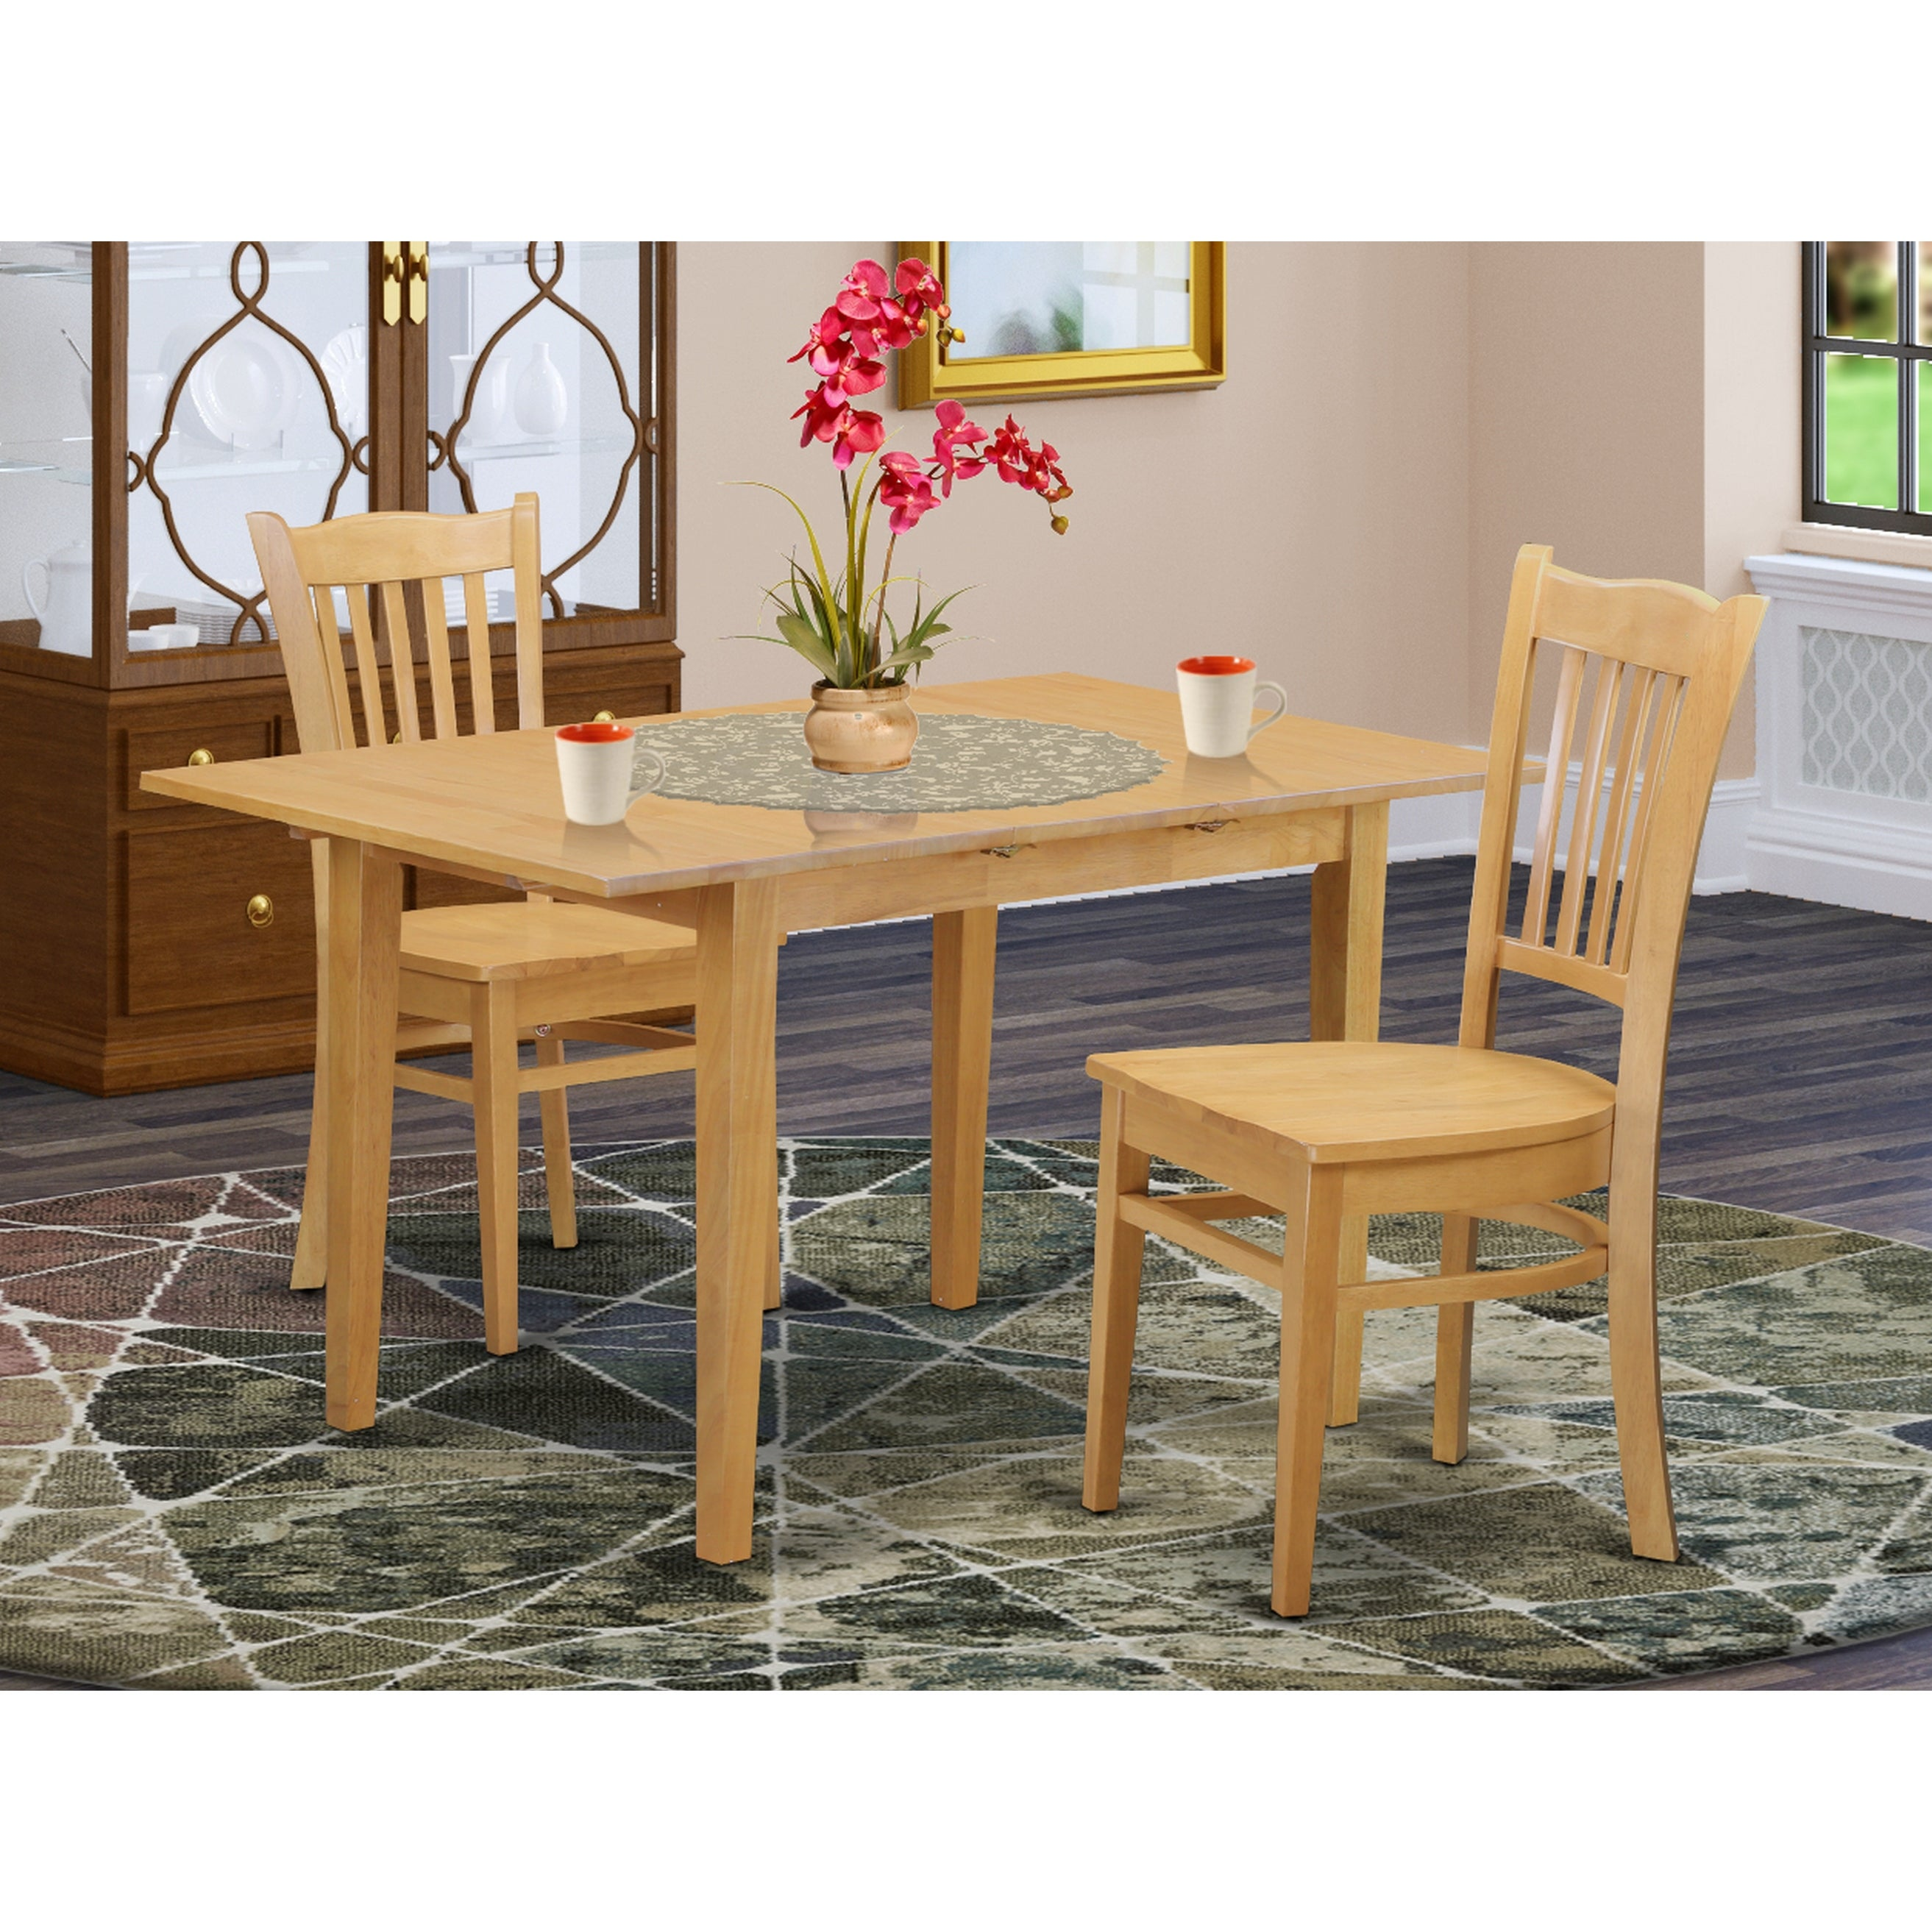 NOGR-OAK-W Dining room set - Dinette table and 9 up to 9 kitchen dining  chairs